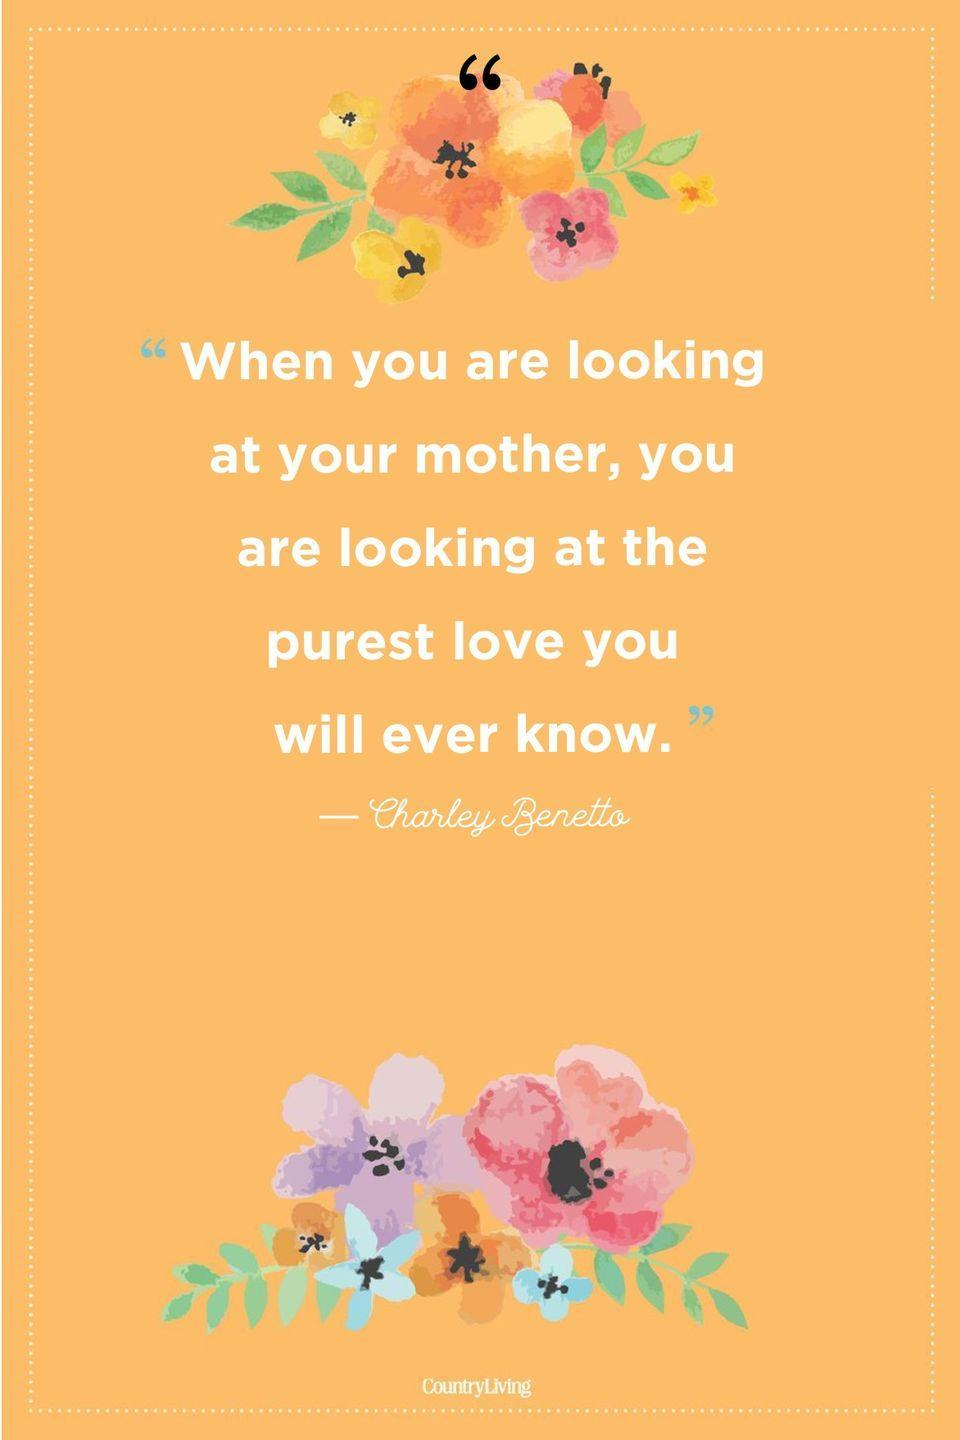 "<p>""When you are looking at your mother, you are looking at the purest love you will ever know.""</p>"